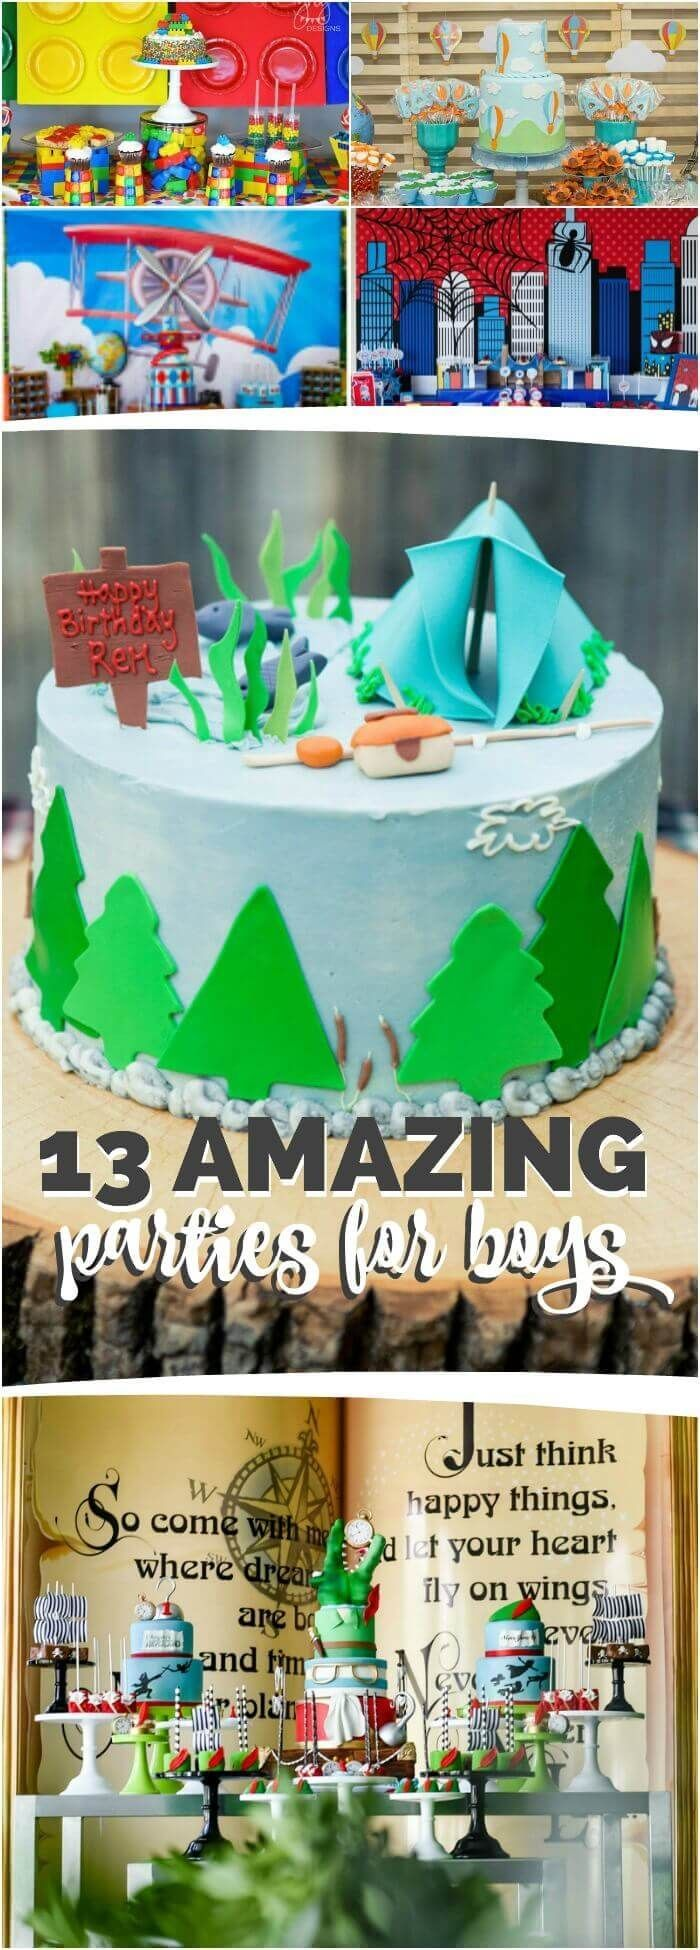 Best Birthday Party Themes for Boys, These Ideas Will Give You Great Inspiration For Your Next Party, Pin Now To Save For Later!